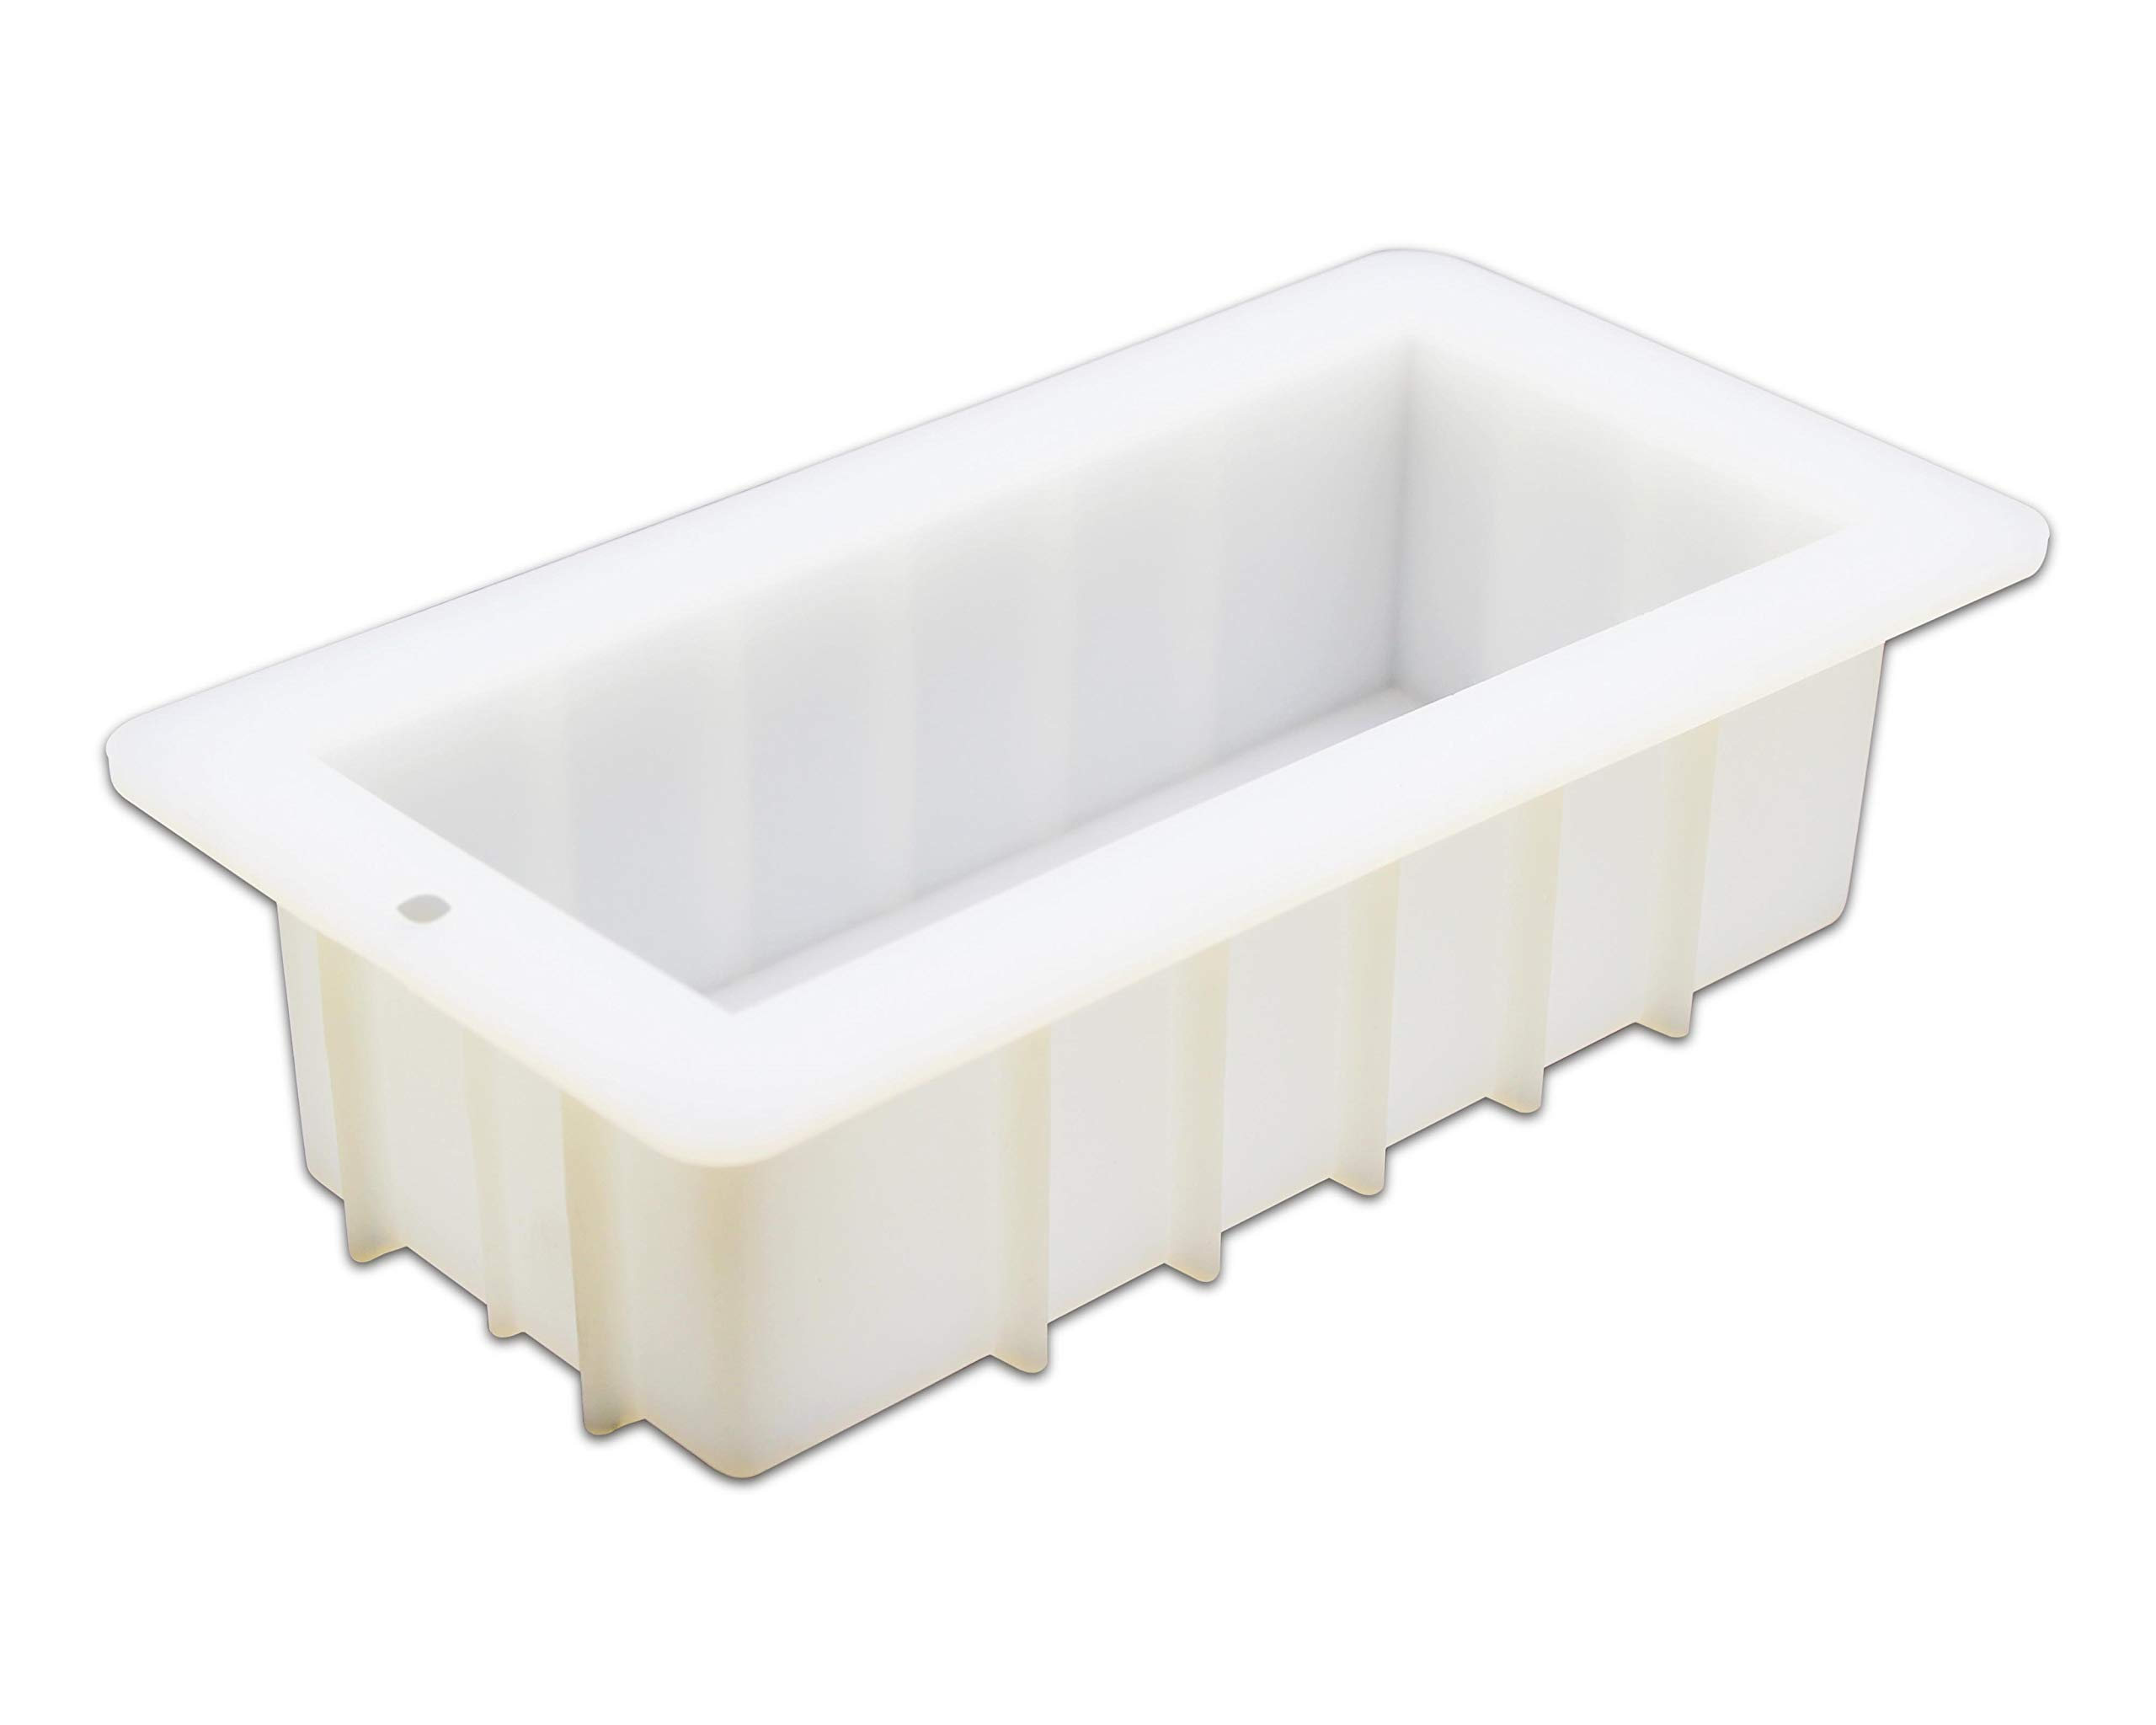 MOSE CAFOLO Loaf Soap Silicone Mold 8'' Rectangular White Mold 40oz for DIY Soap Making